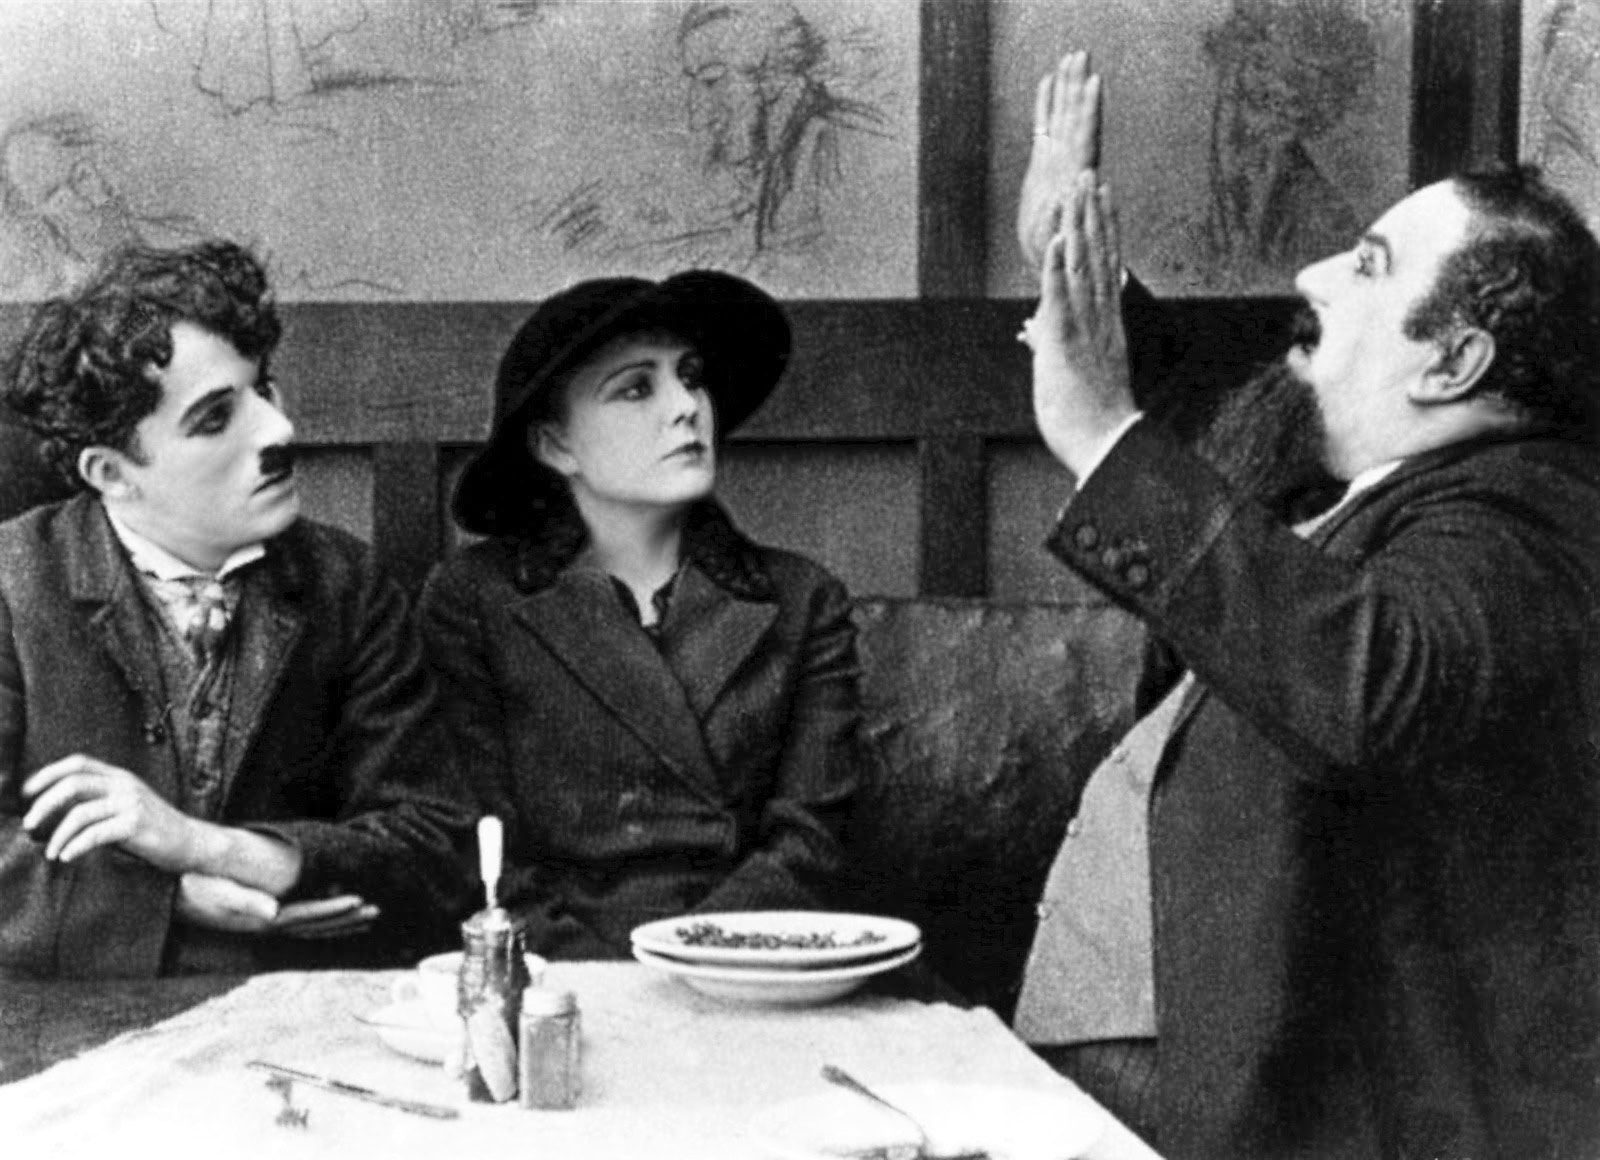 7 Art Cinema | Official Website | Charlie Chaplin - 1917 - The Immigrant | 06 | Film Photograph